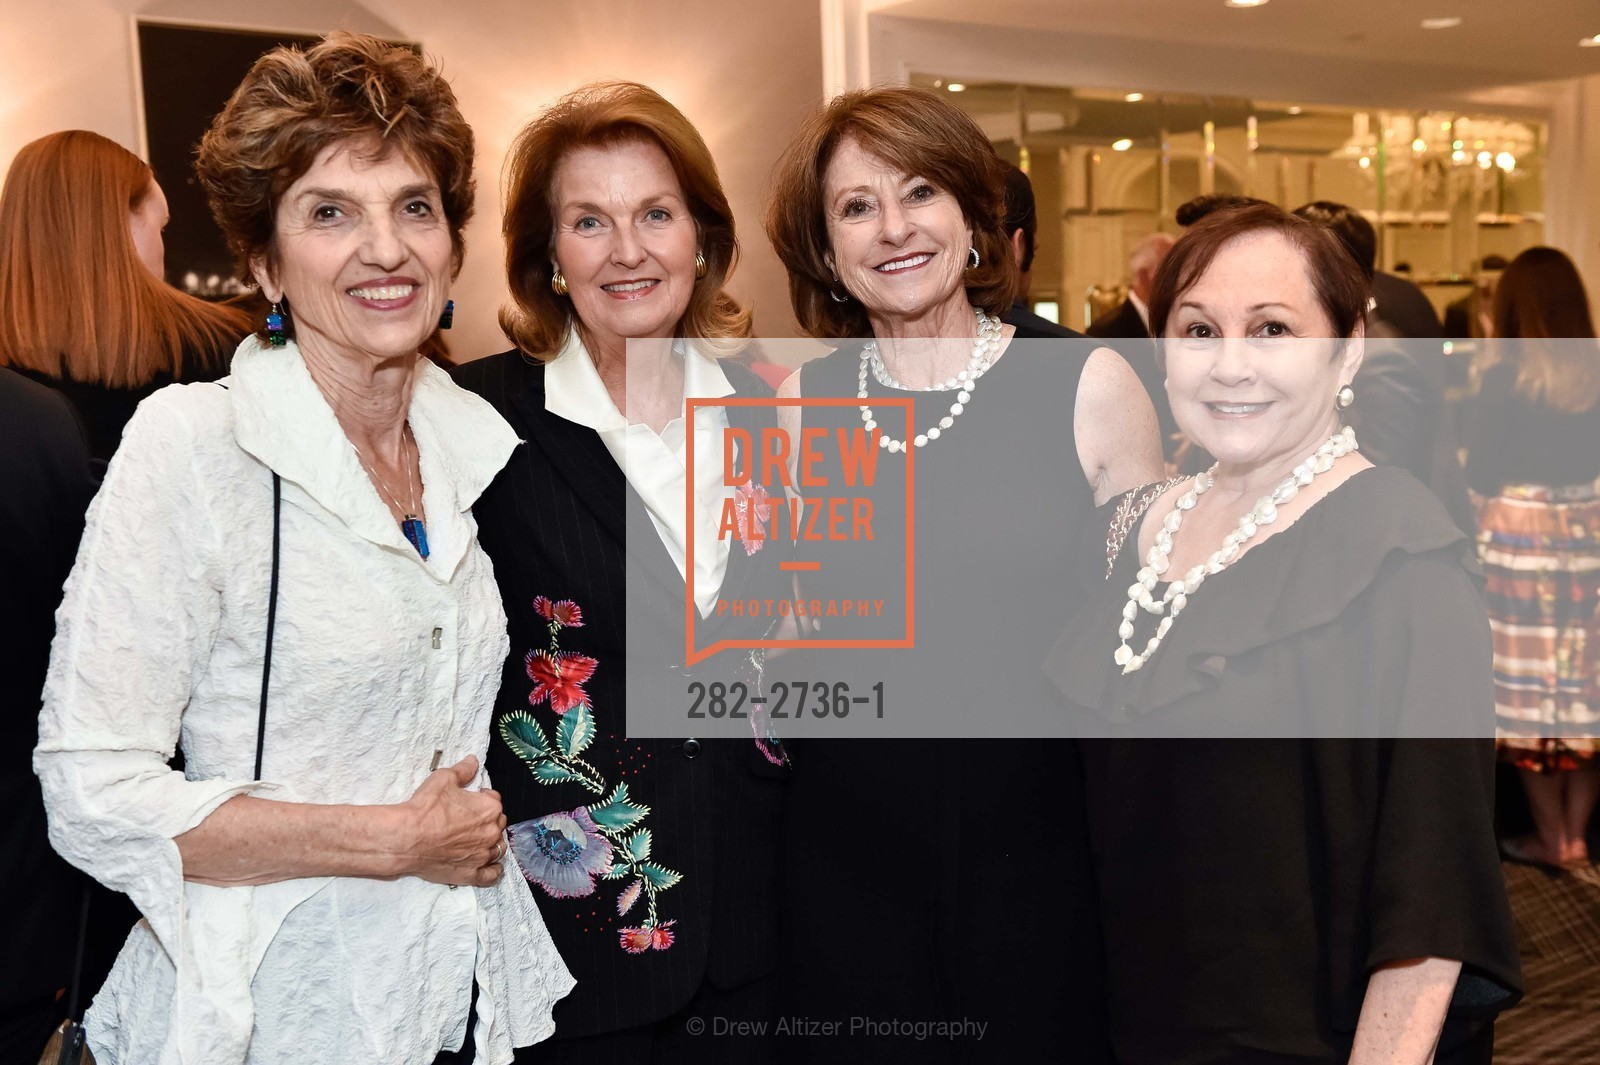 Lynn Wintergross, JaMel Perkins, Judy Grossman, Judy Camp, Photo #282-2736-1